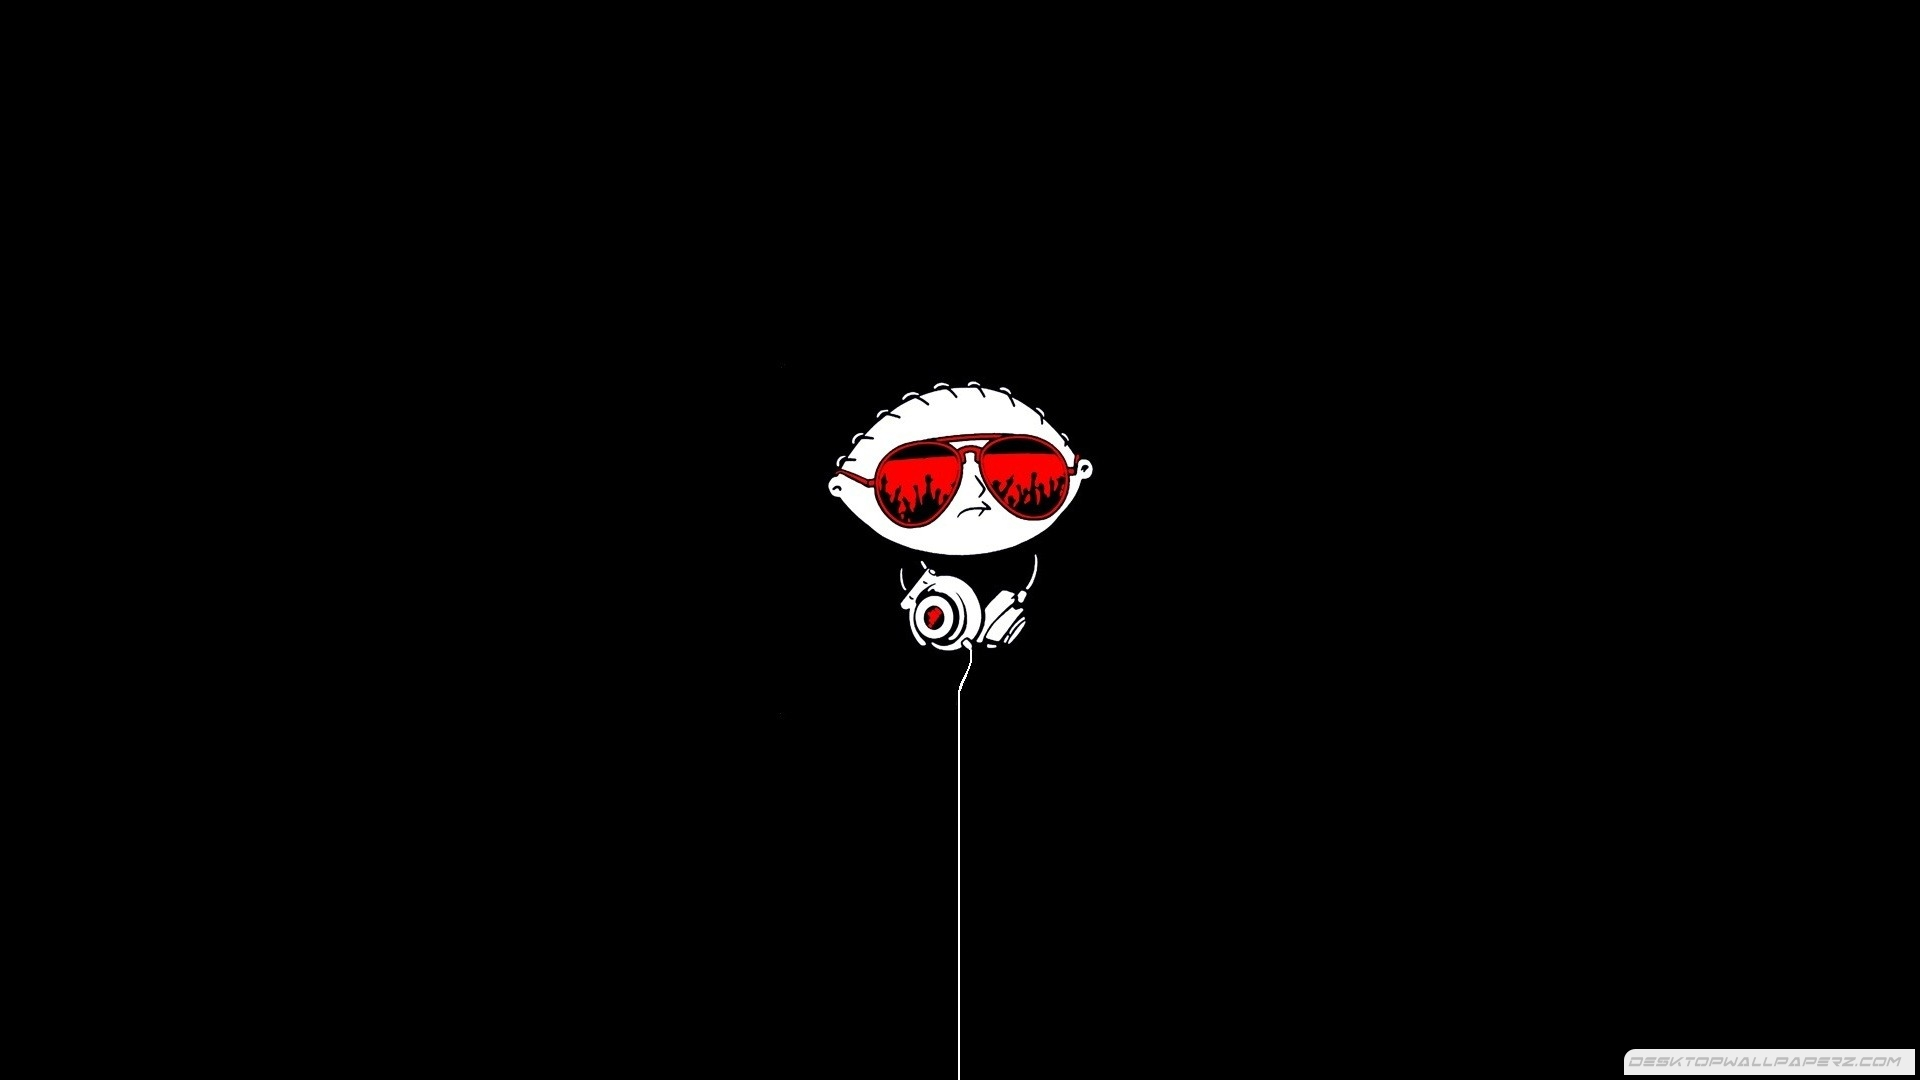 Family Guy Glasses Funny Stewie Griffin Dj 19201080 Wallpaper 1920x1080